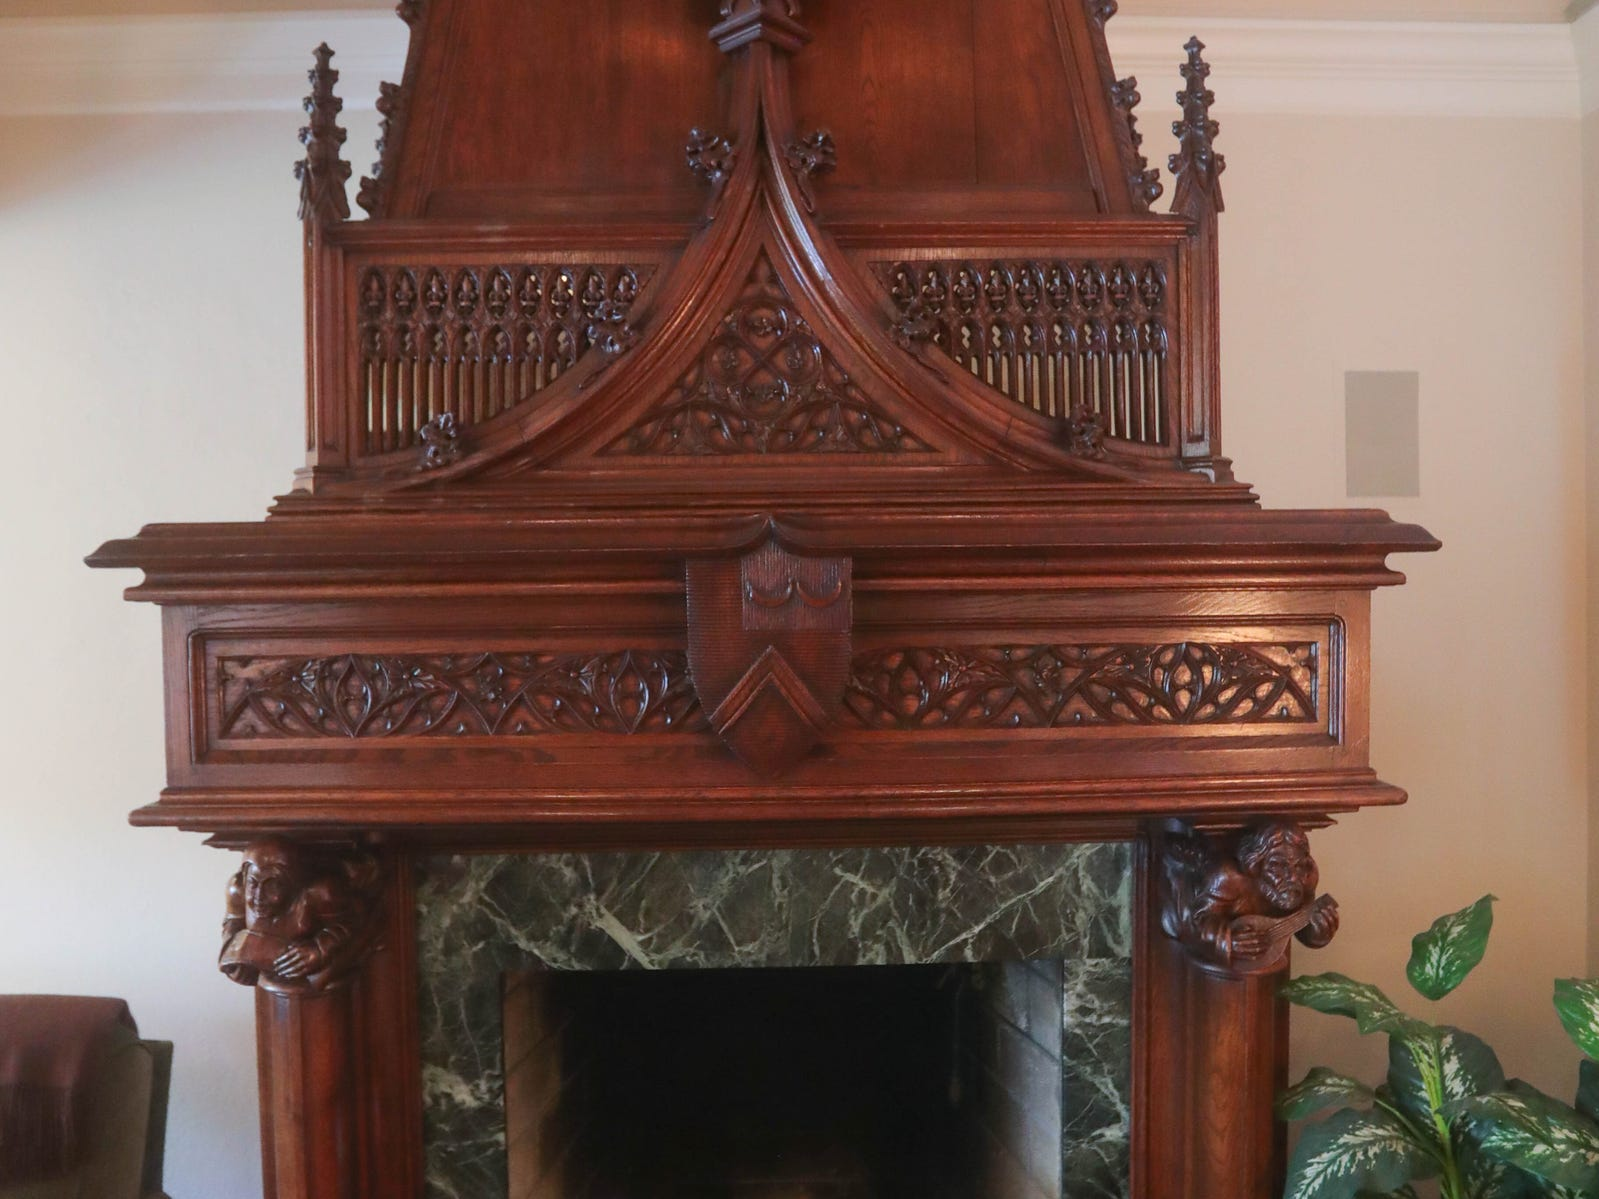 The elaborate carved oak fireplace is said to be 400 years old. It was bought in France, then taken apart and shipped here to be reassembled.